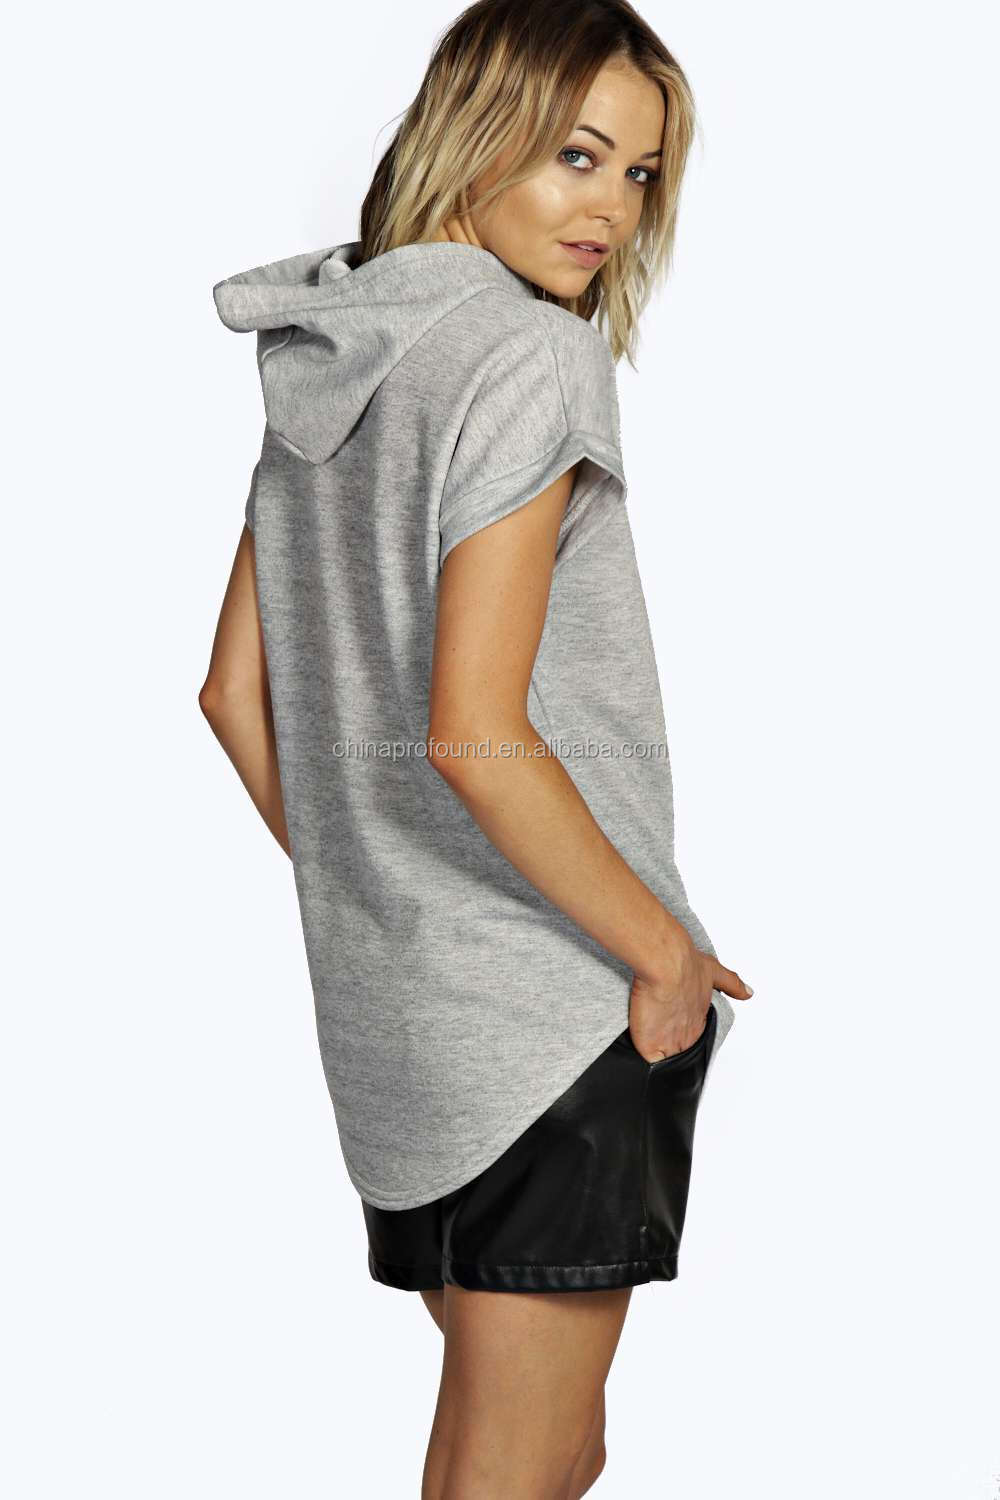 100% cotton women hoodies/longline sport hoodies/Custom short sleeve hoodies sweater